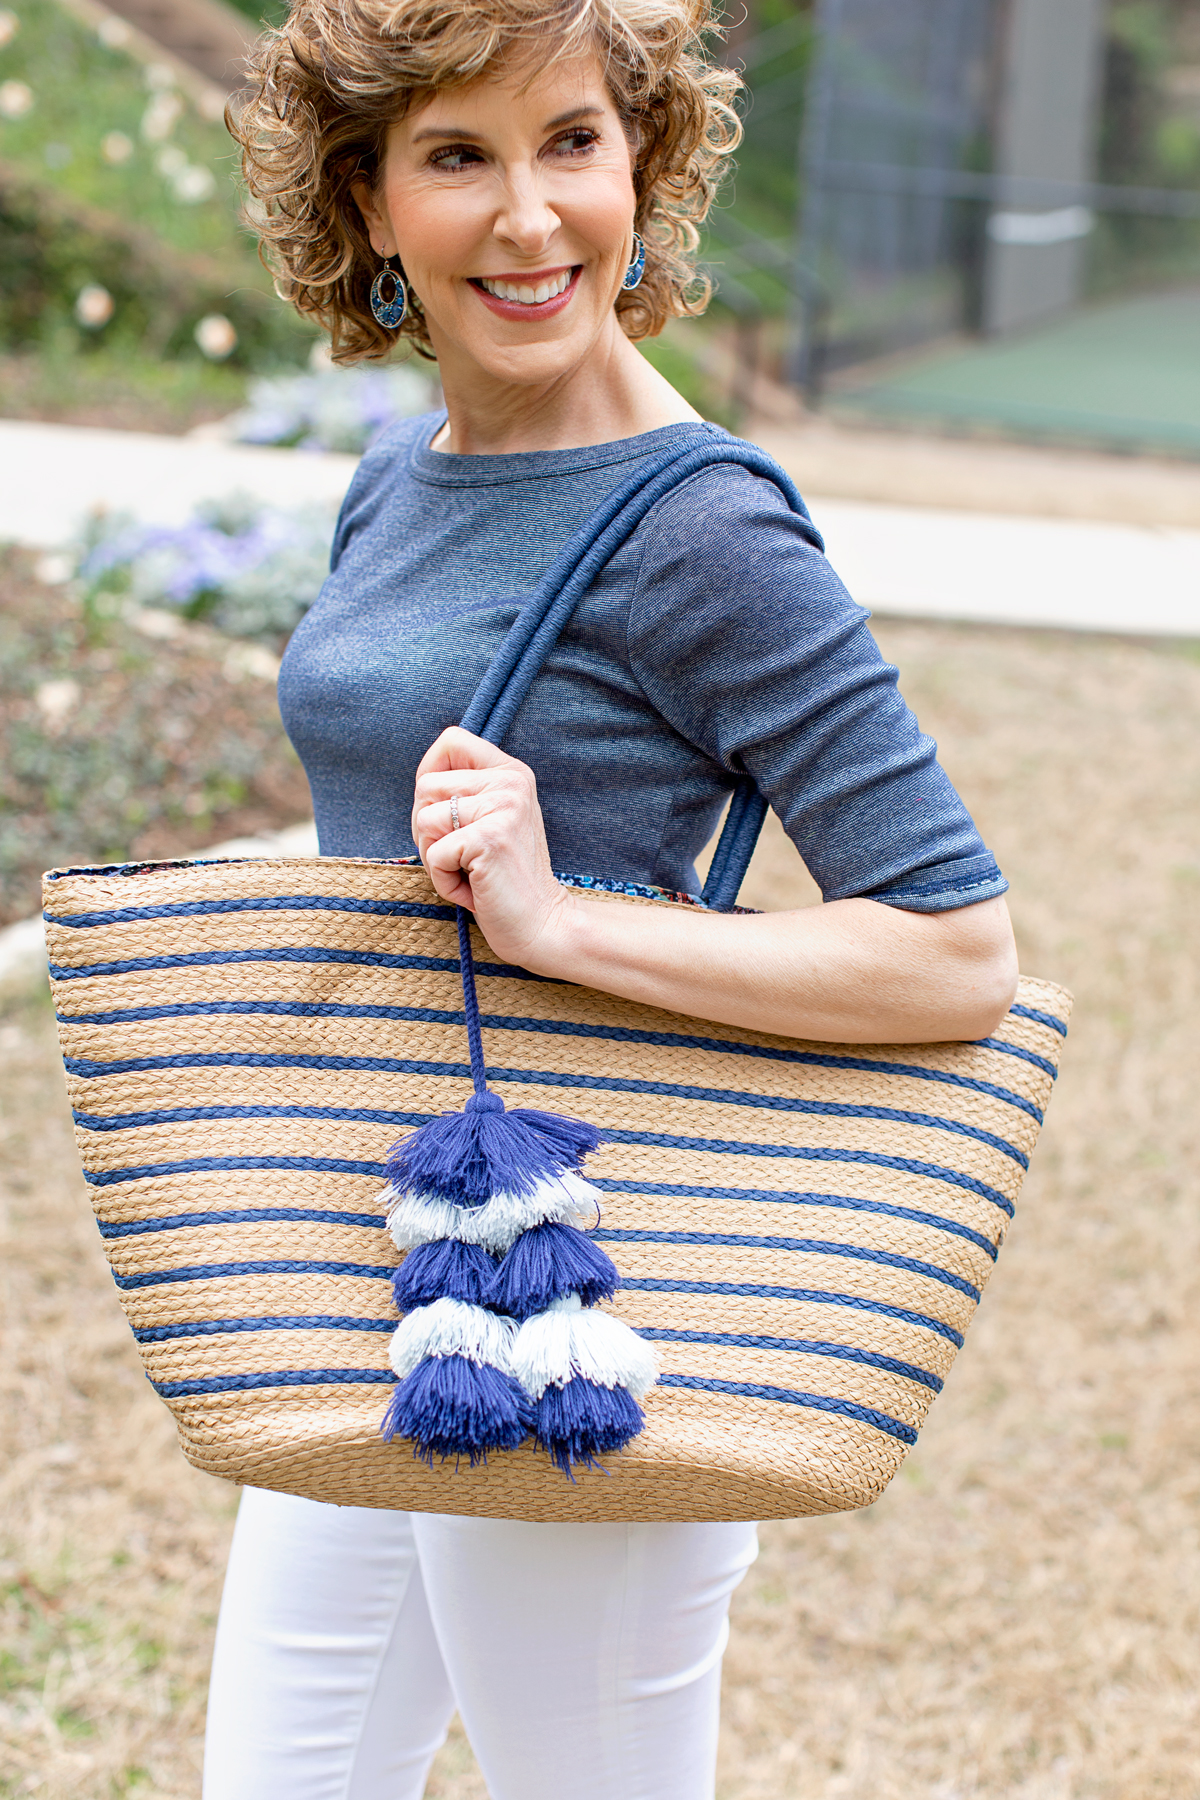 woman in blue tee carrying straw tote with tassels